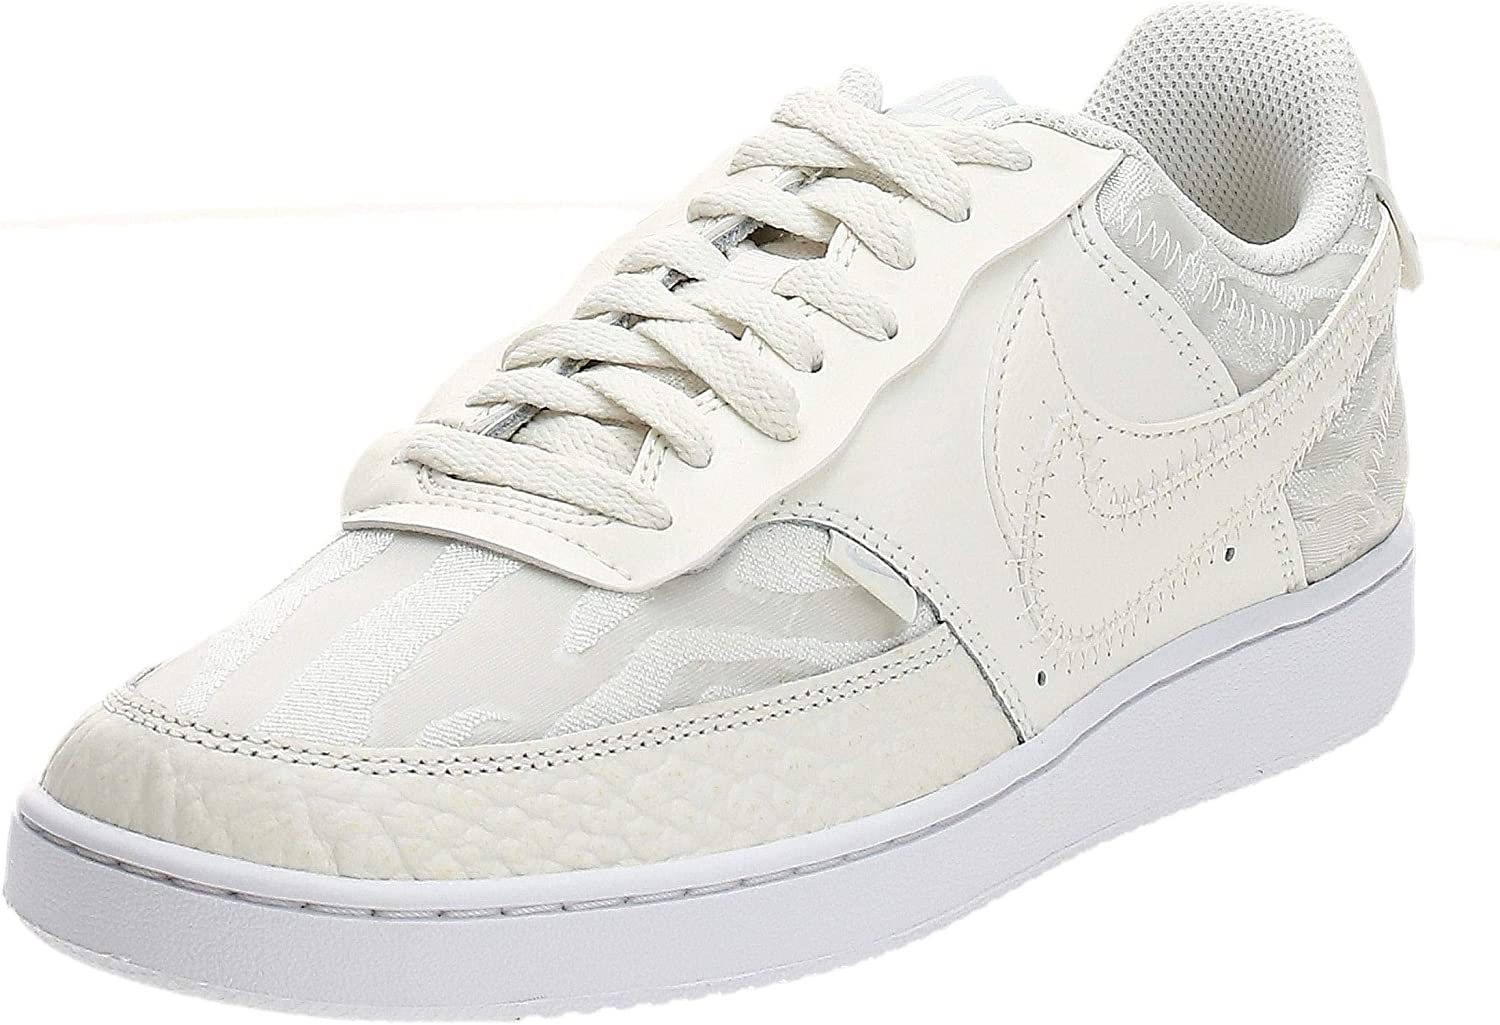 Marca comercial locutor limpiador  Amazon.com | Nike Court Vision Low Premium Trainers Women Beige Low Top  Trainers Shoes | Fashion Sneakers